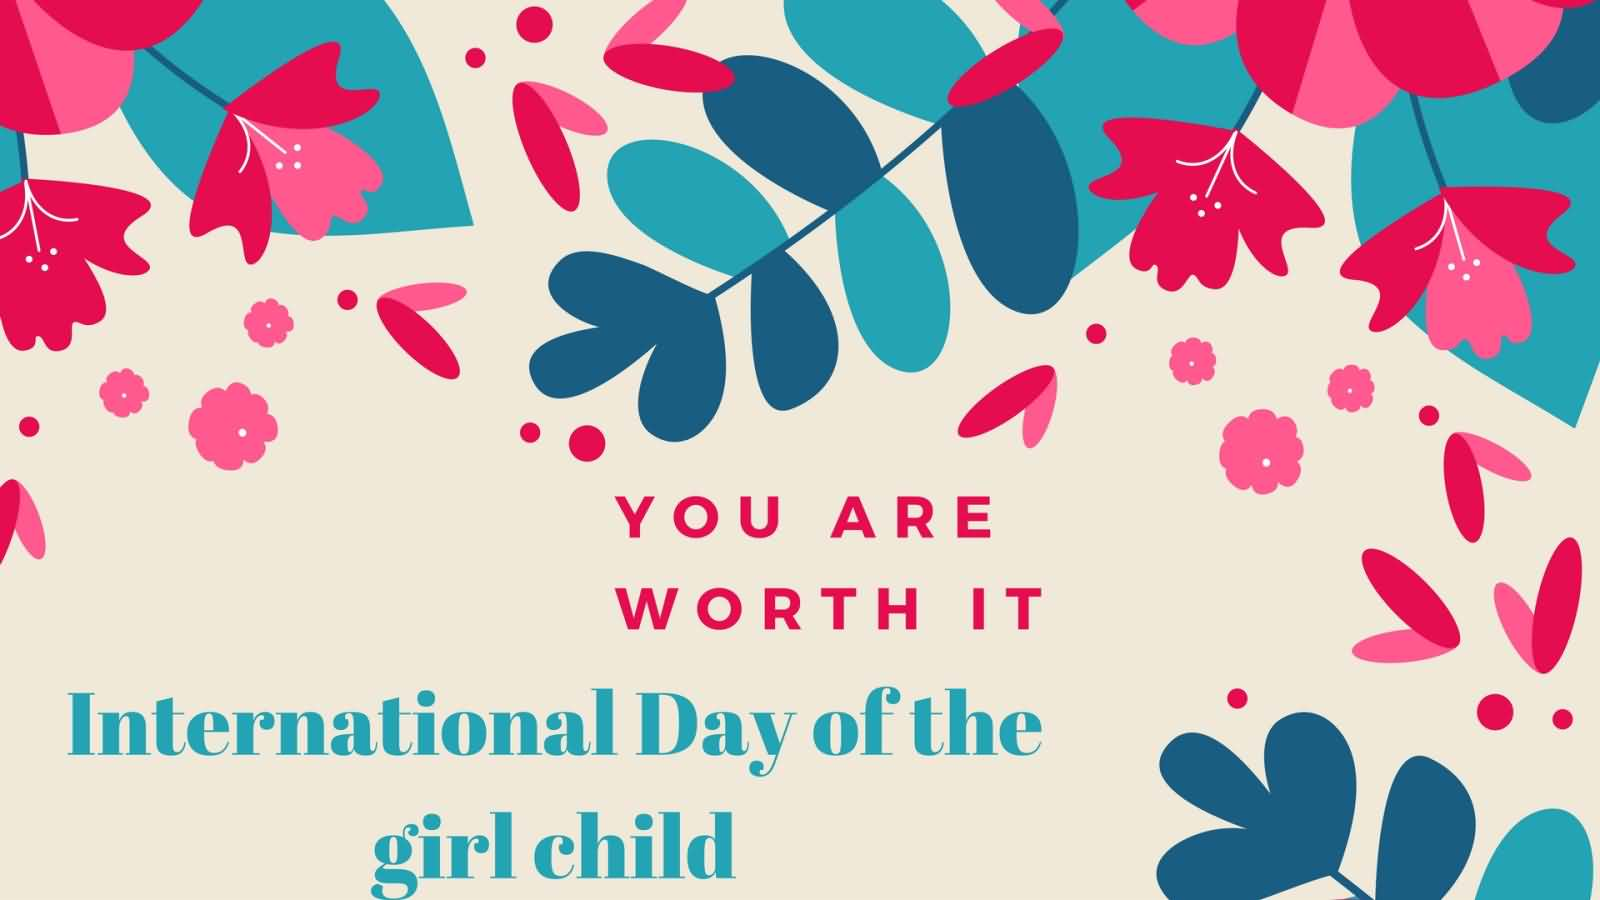 Int'l Day of Girl Child 2021: Theme, History, Significance and More!